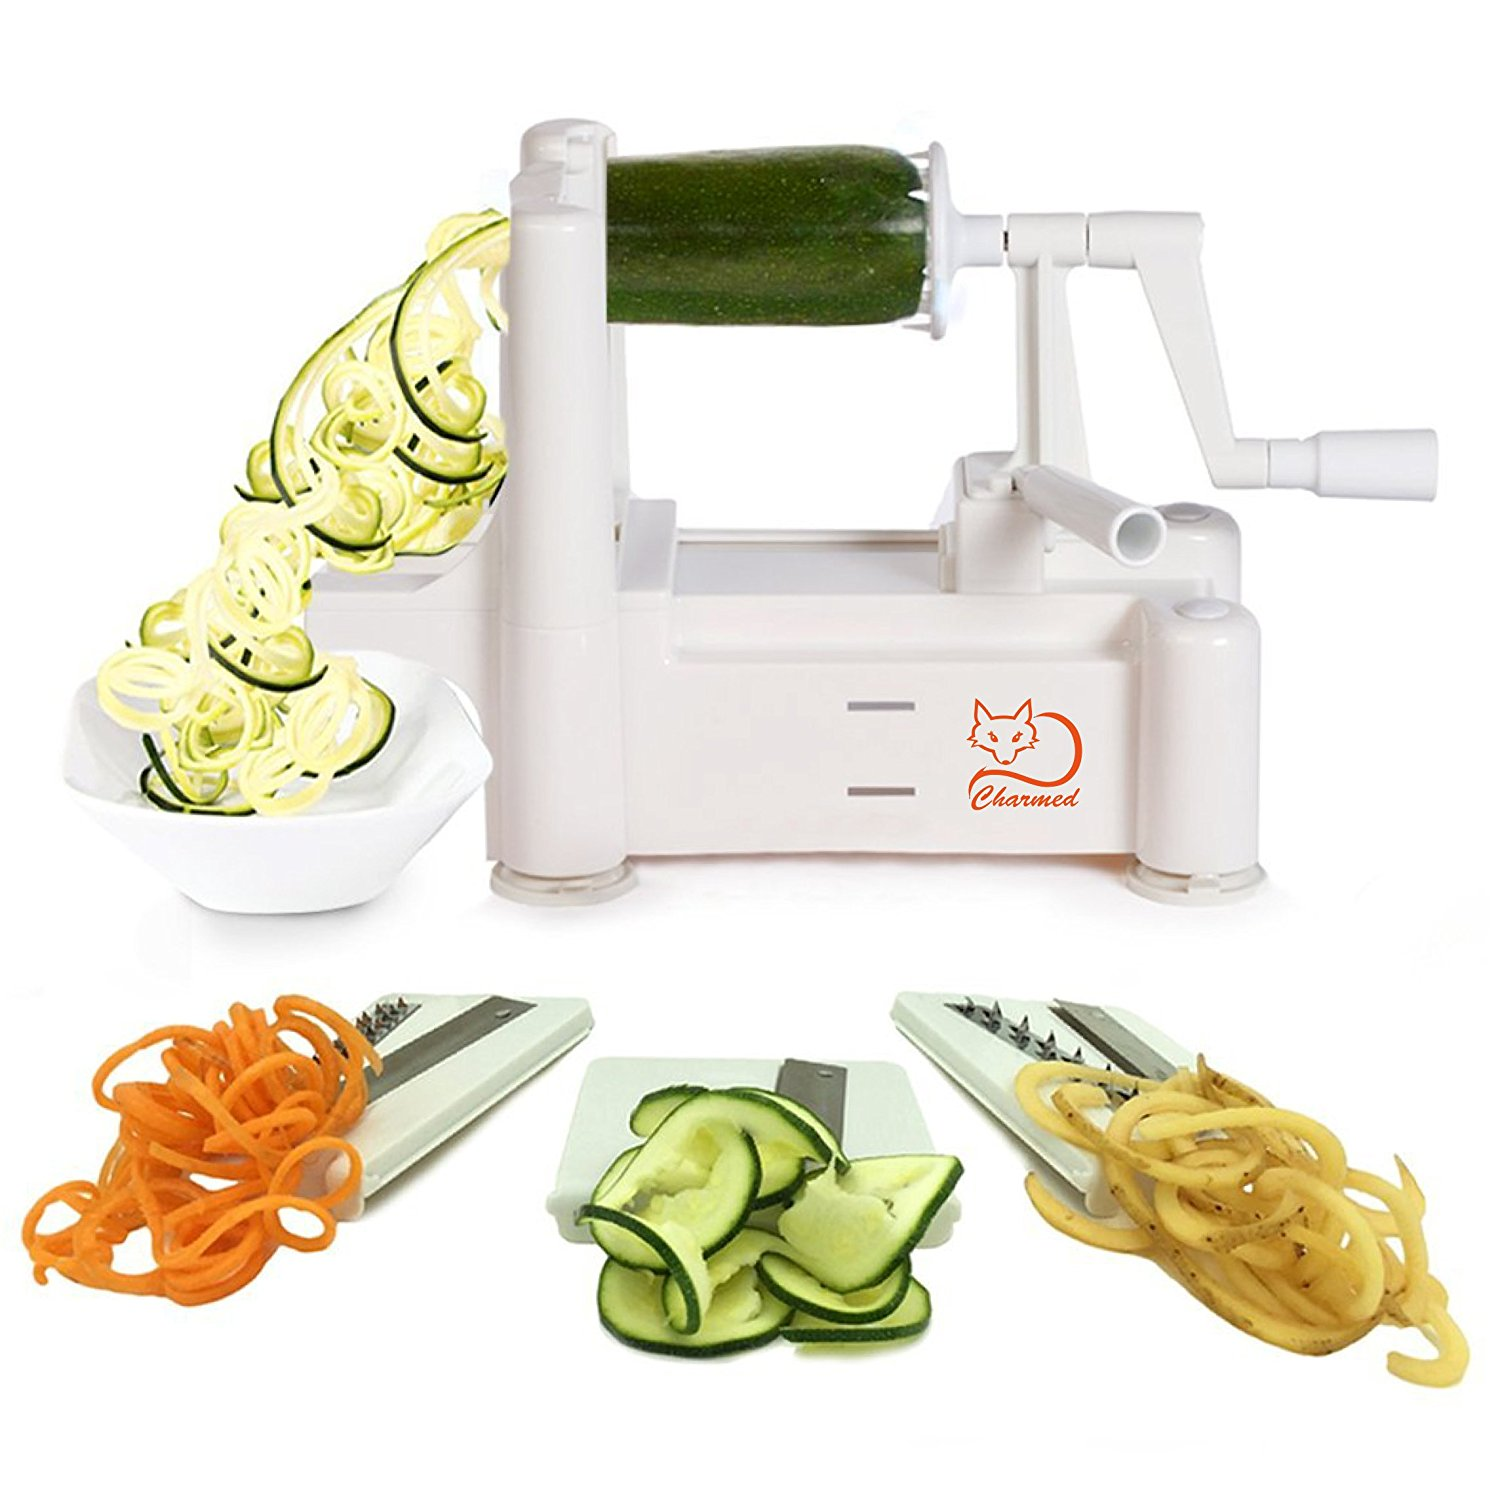 CHARMED TRI-BLADE VEGETABLE SPIRAL SLICER GRATER PEELER WITH SUCTION BASE